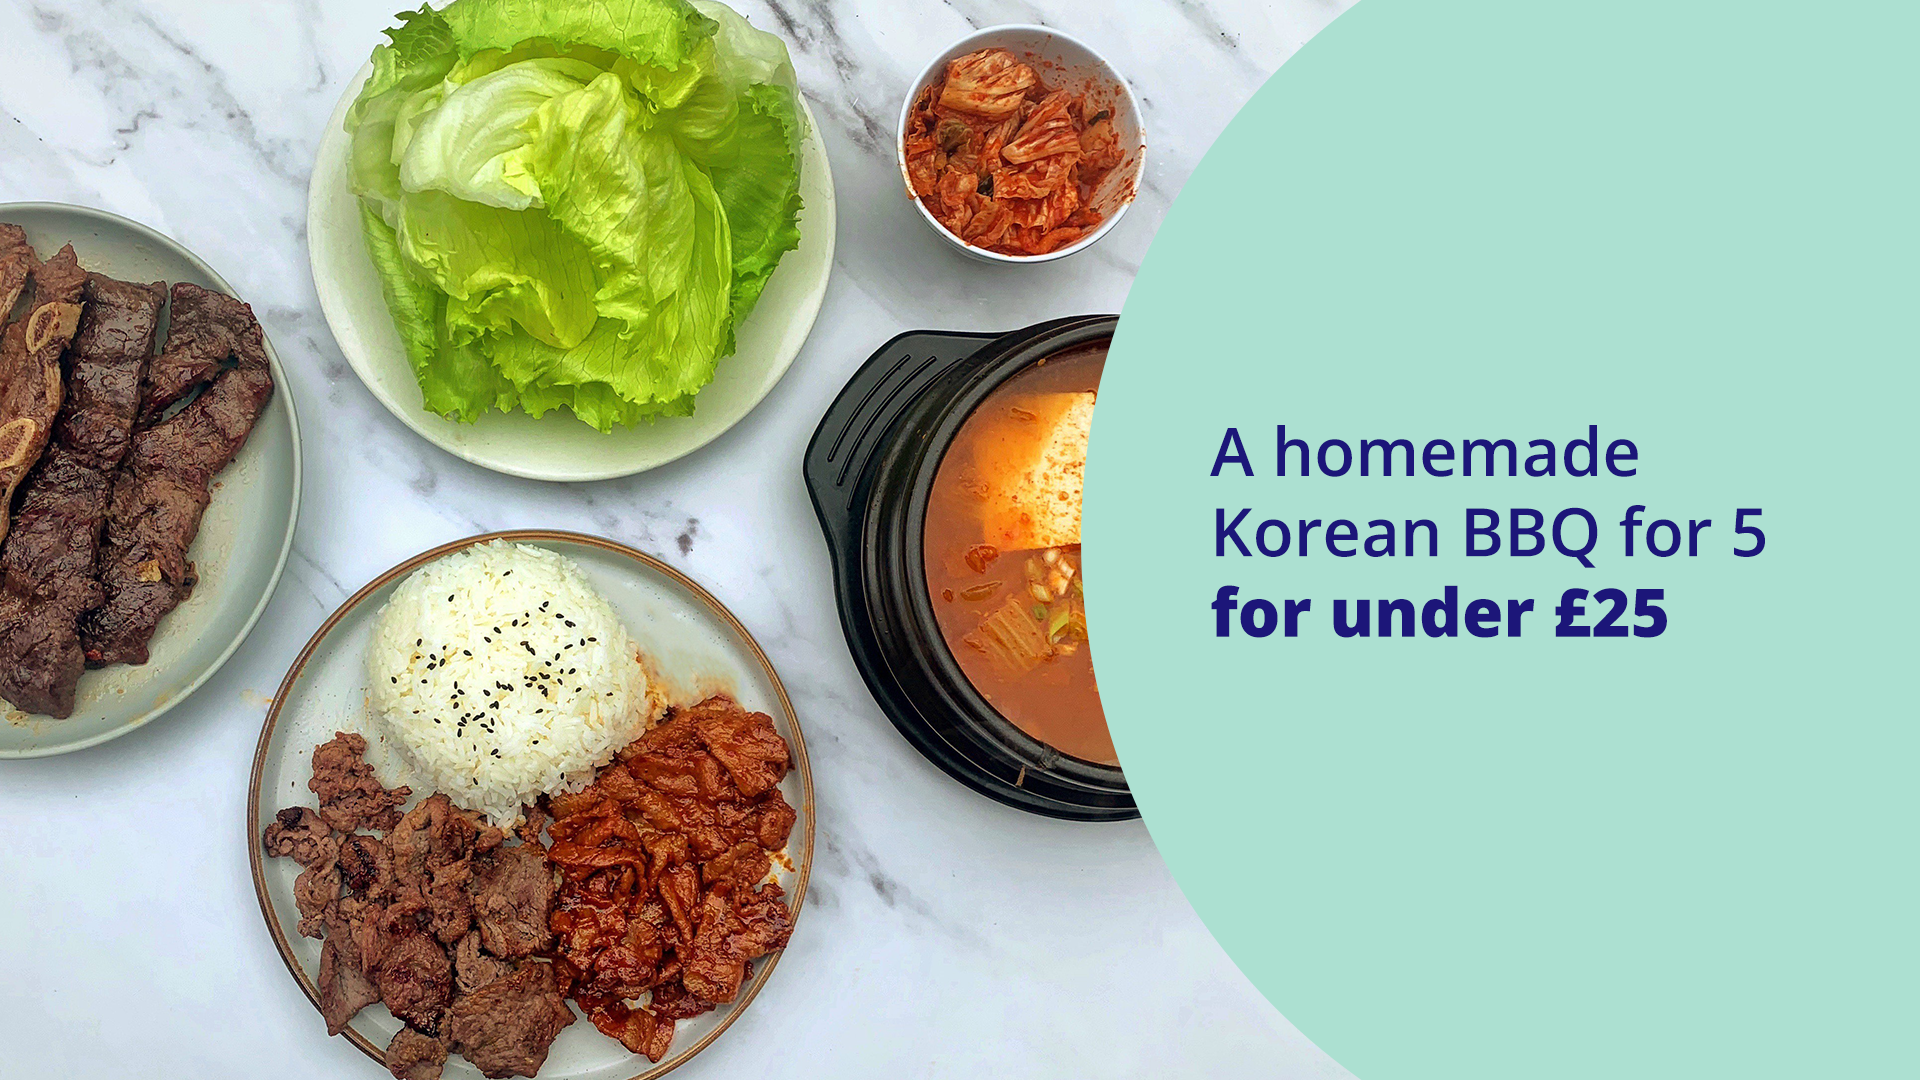 Featured image for A homemade Korean BBQ for 5 for under £25